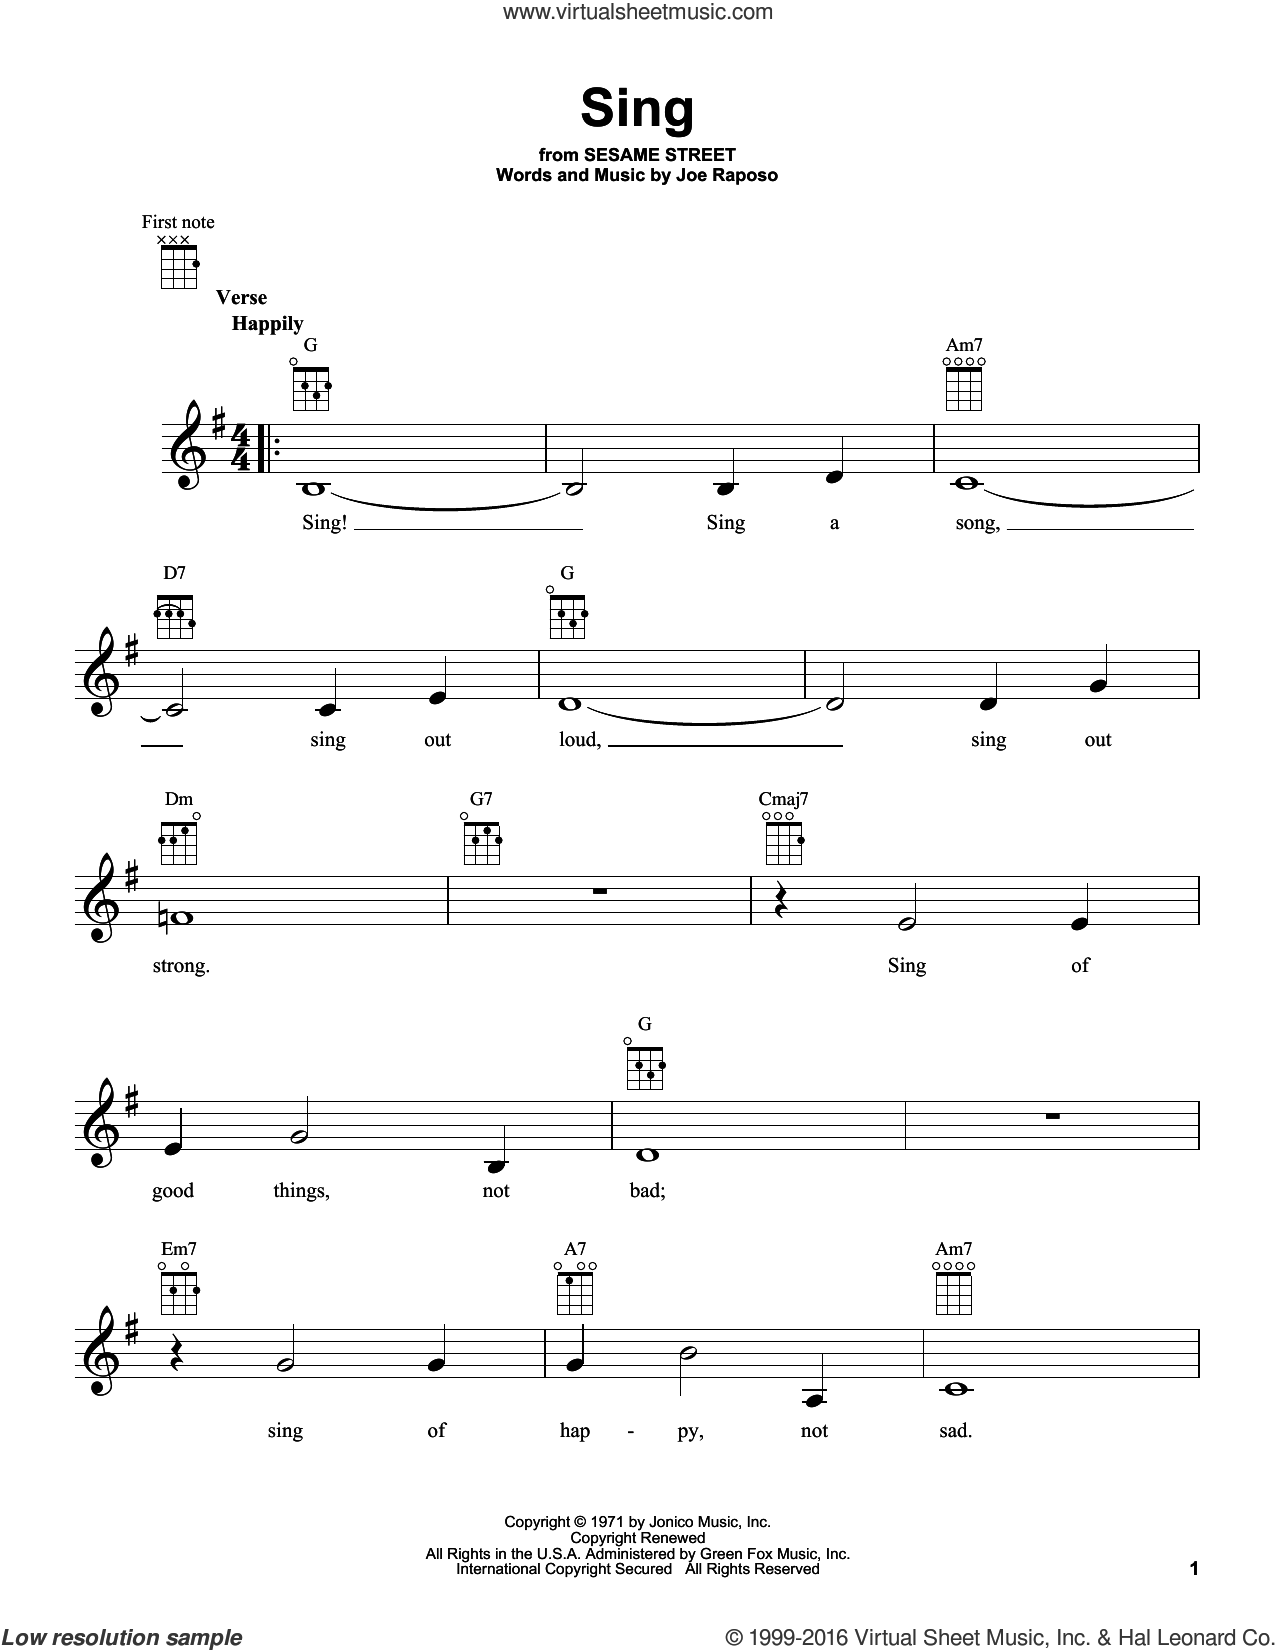 Sing sheet music for ukulele by Joe Raposo